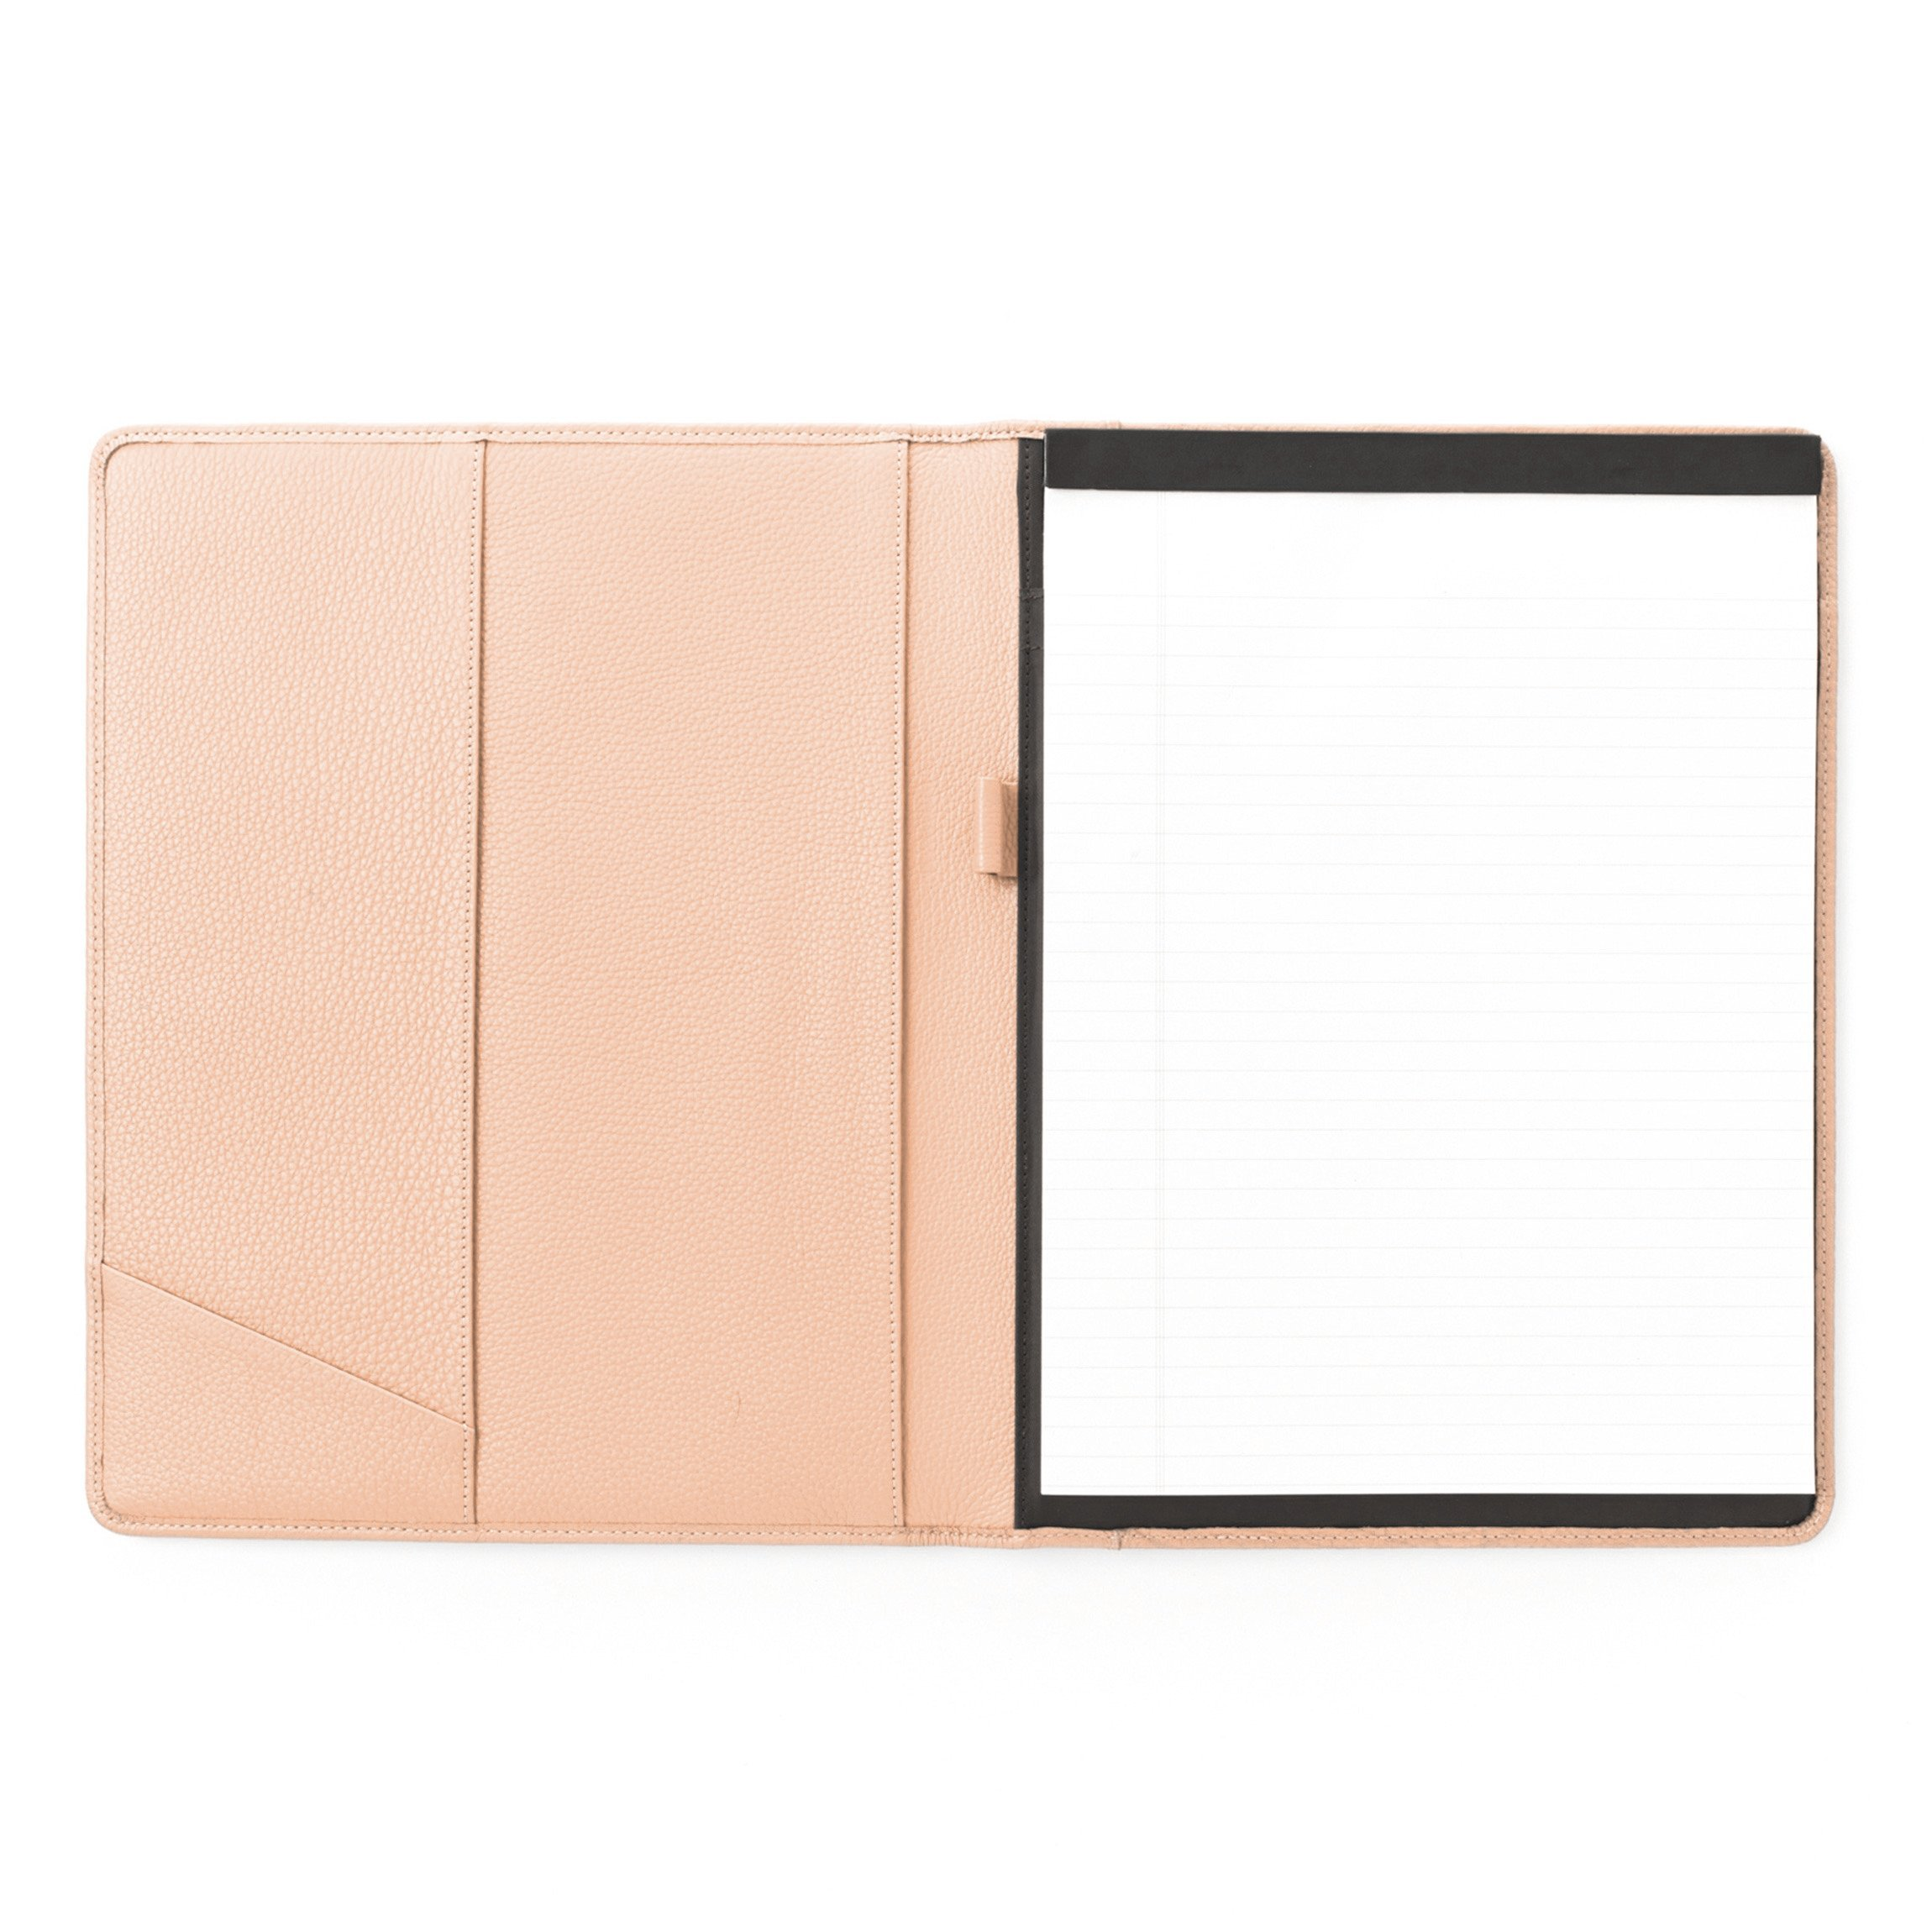 Leatherlogy Standard Padfolio with Pen Loop - Full Grain Leather Leather - Rose (pink)